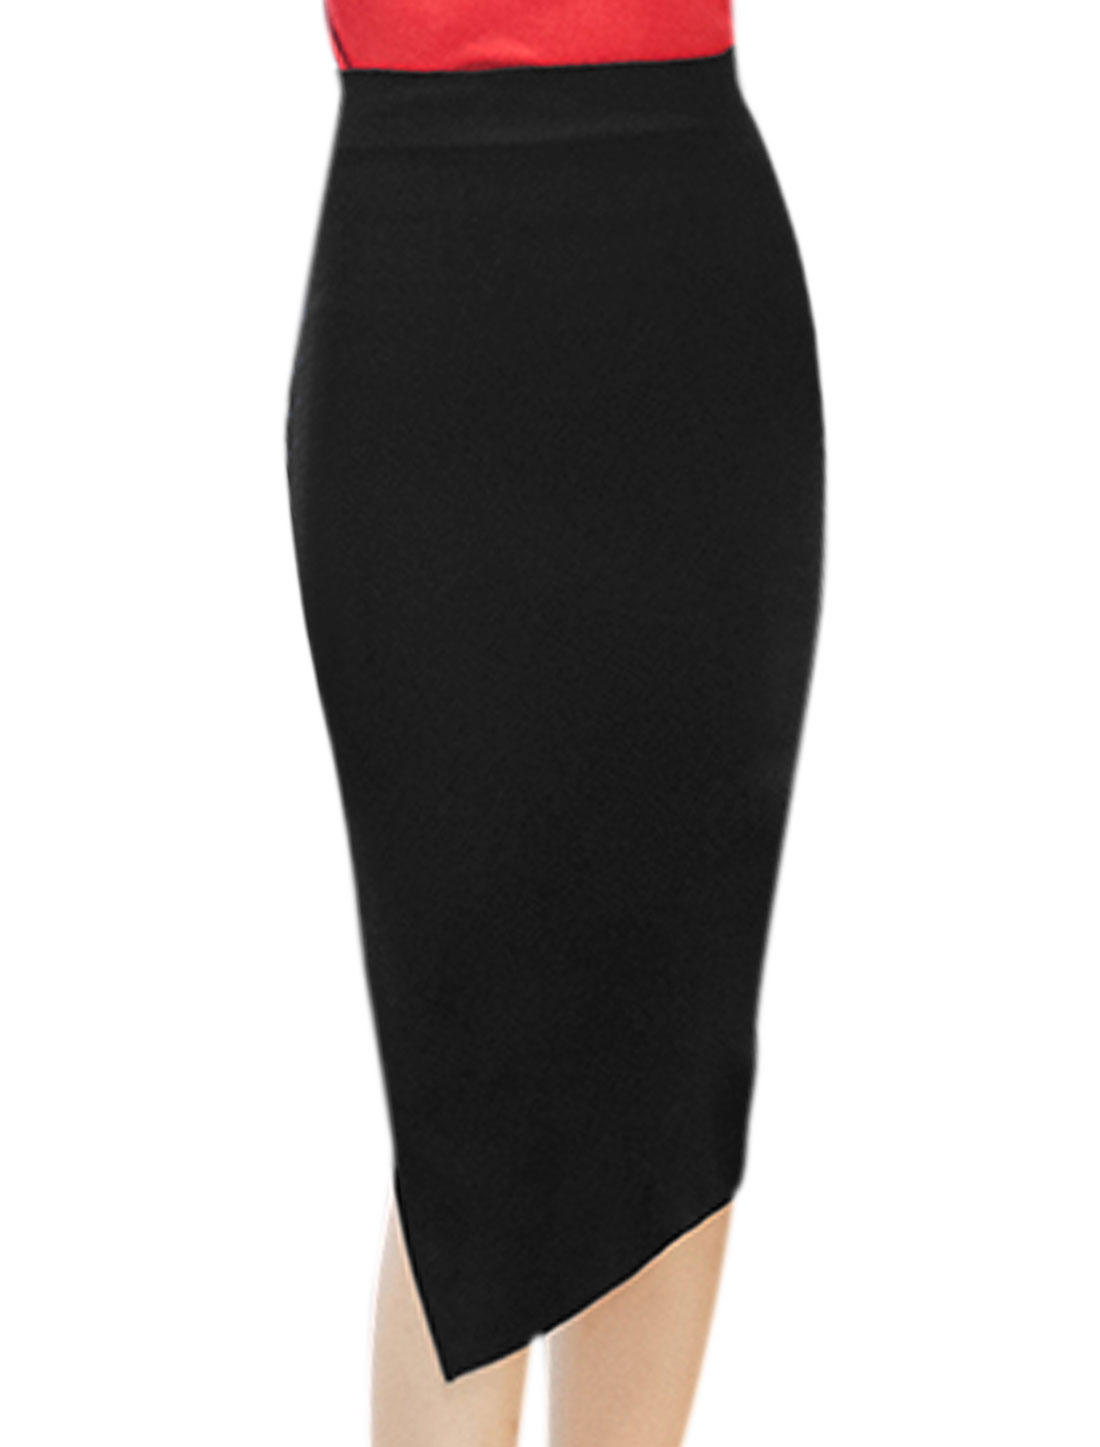 Women High Waist Split Side Below Knee Length Pencil Skirt Black L